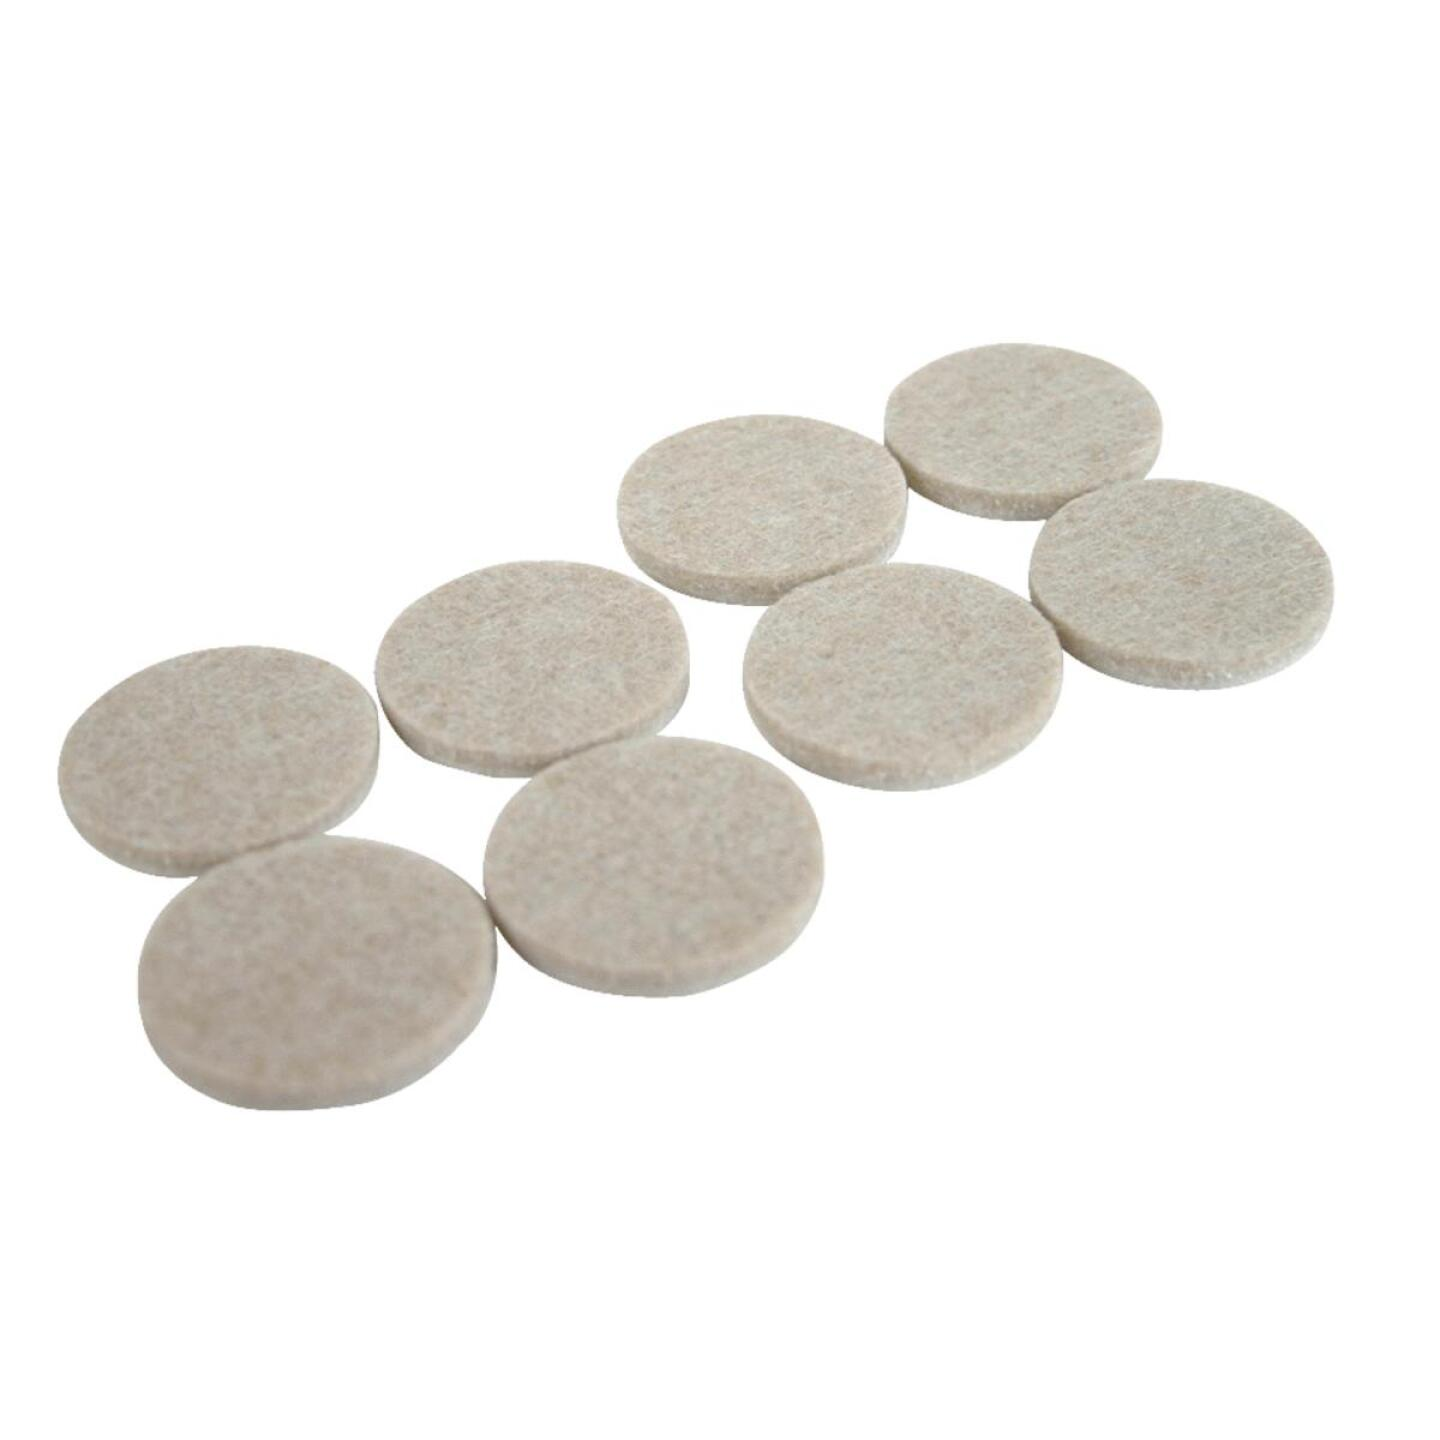 Magic Sliders 1-1/2 In. Round Oatmeal Self Adhesive Felt Pads (8-Pack) Image 1